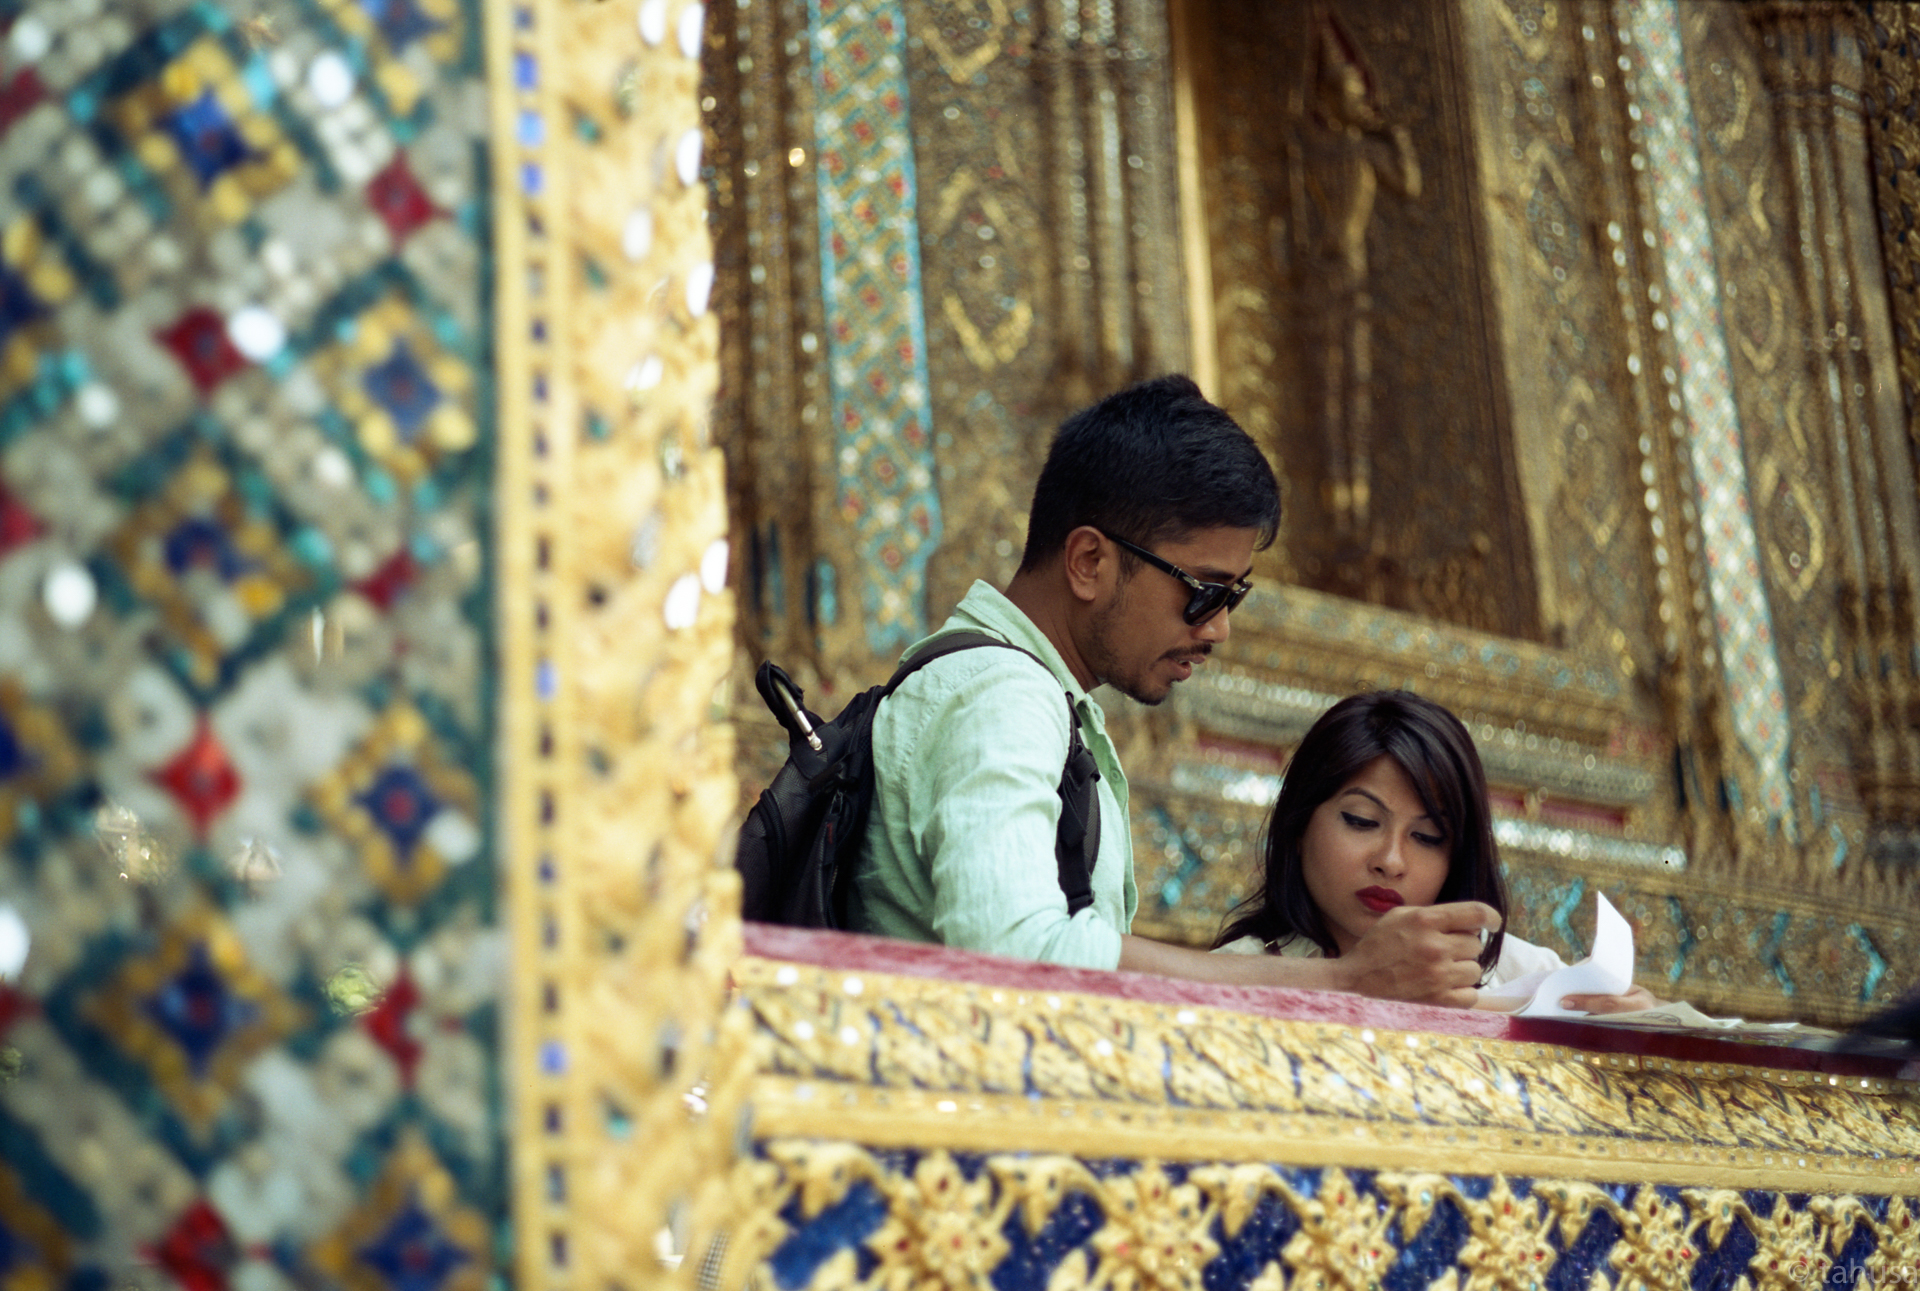 Tourist-visiting-palace-in-bangkok-thailand-wearing-sunglasses-with-shiny-gold-decoration-interior-street-snap-hk-cinestil-cine-cinestill50-50D-film-analog-leica-m2-Noctilux-50mm-f1-e58-v1